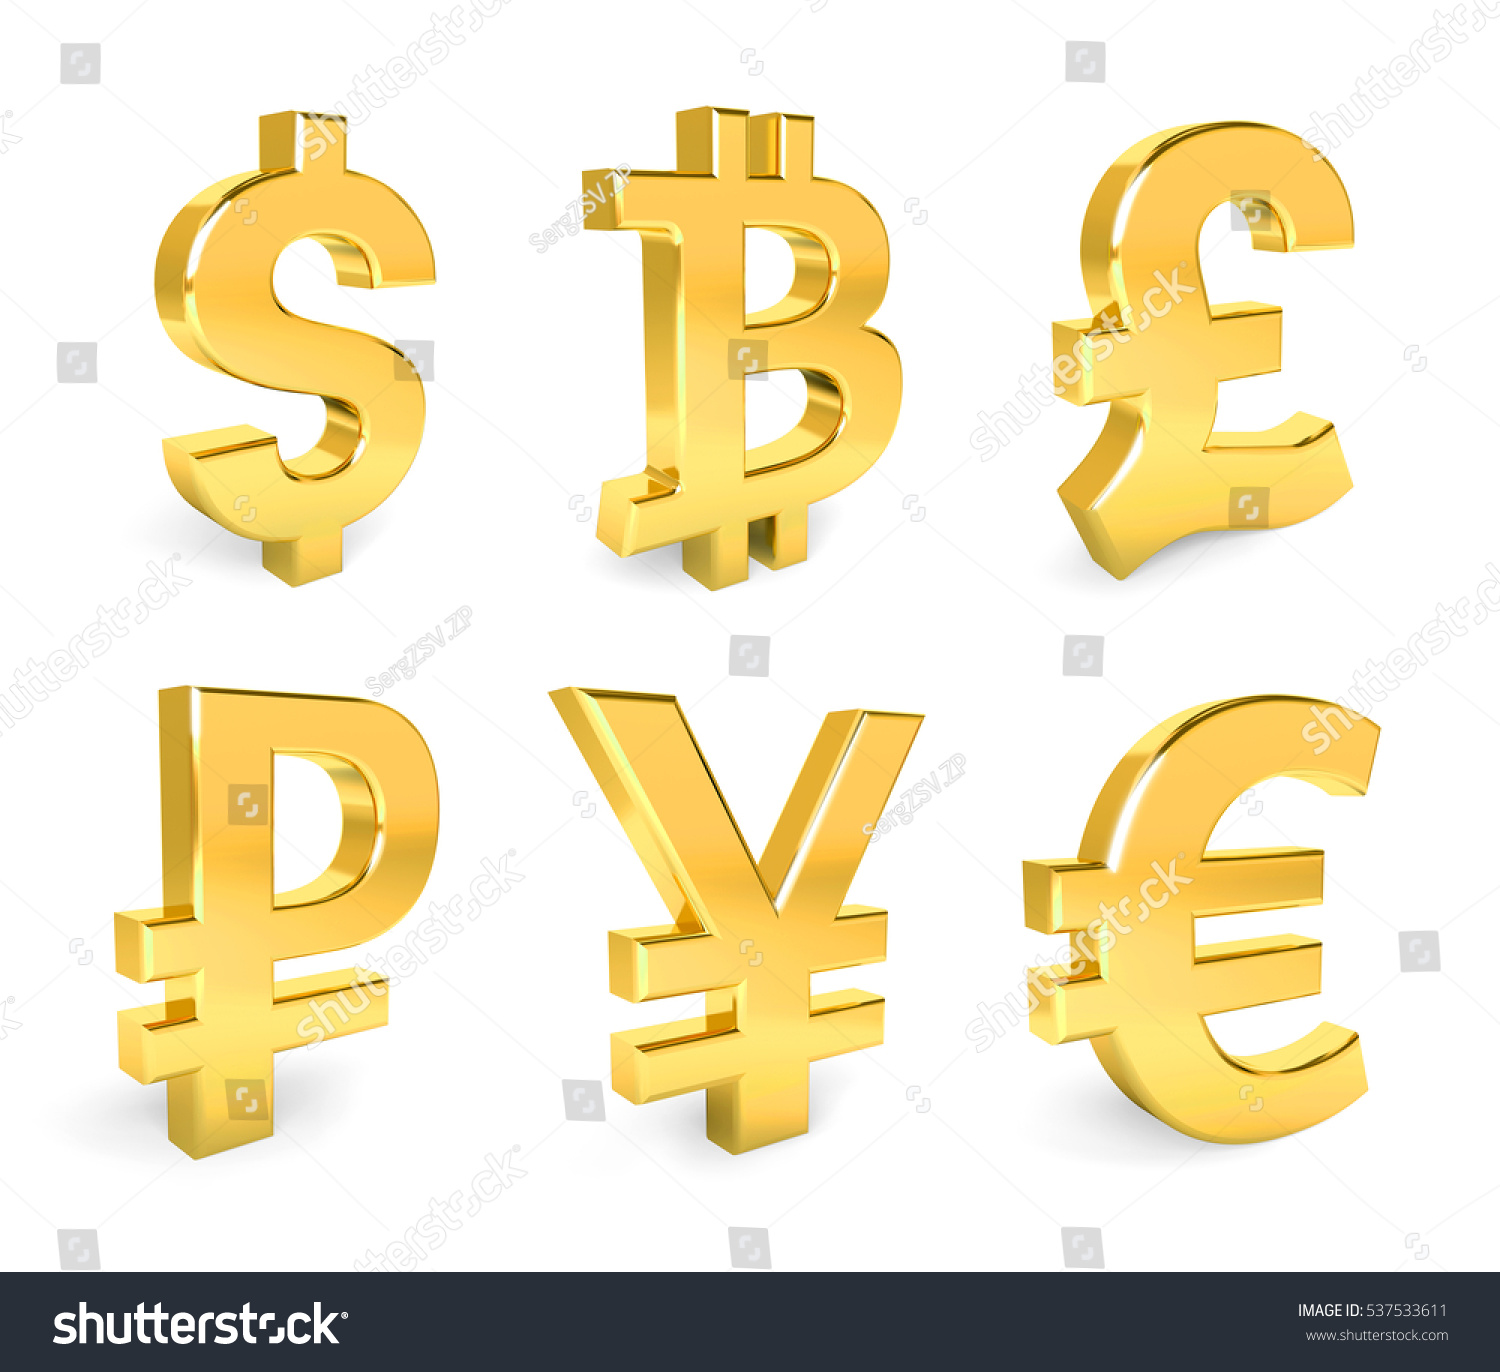 Dollar Euro Pound Yen Bitcoin Ruble Stock Illustration 537533611